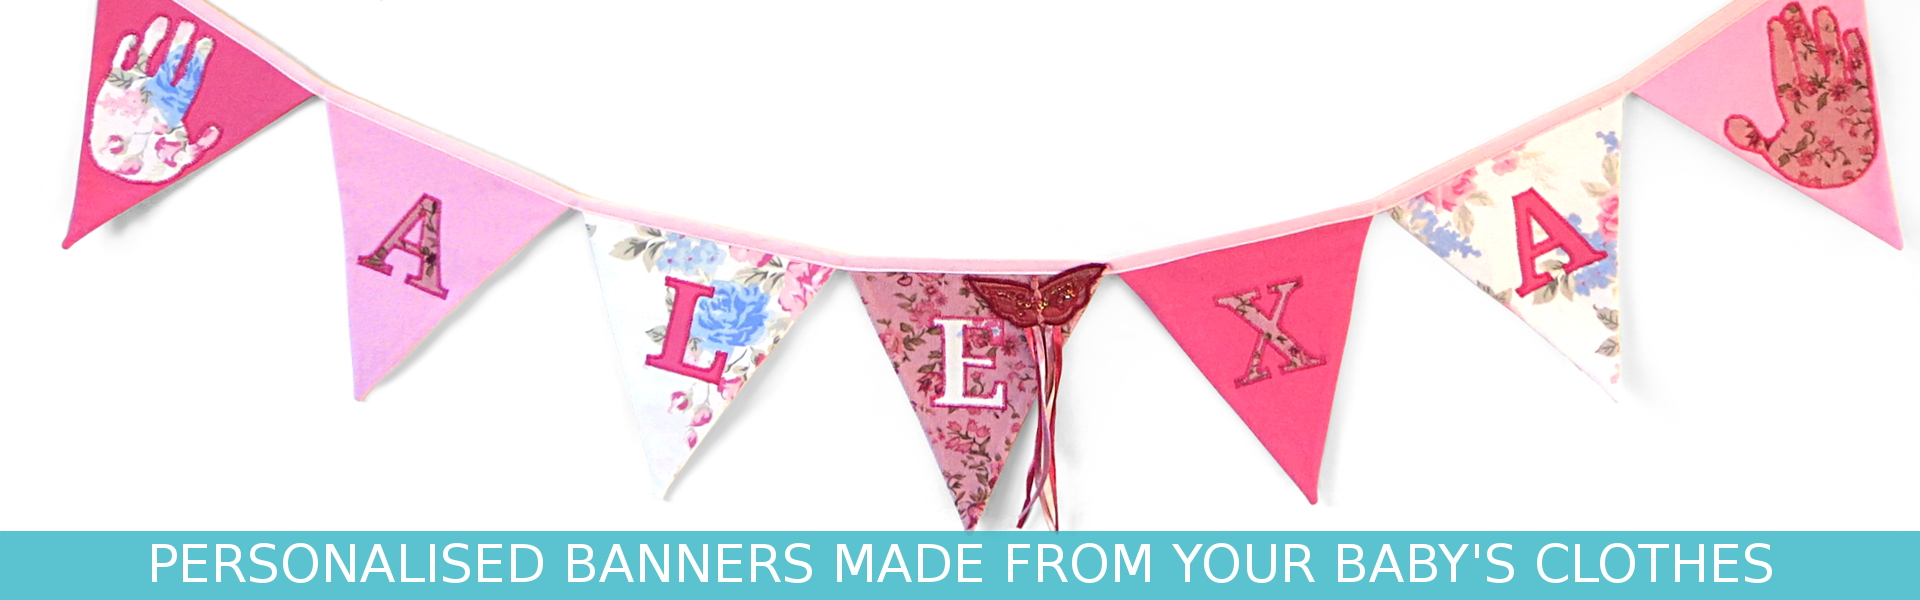 Personalised banner made from your child's upcycled baby clothes